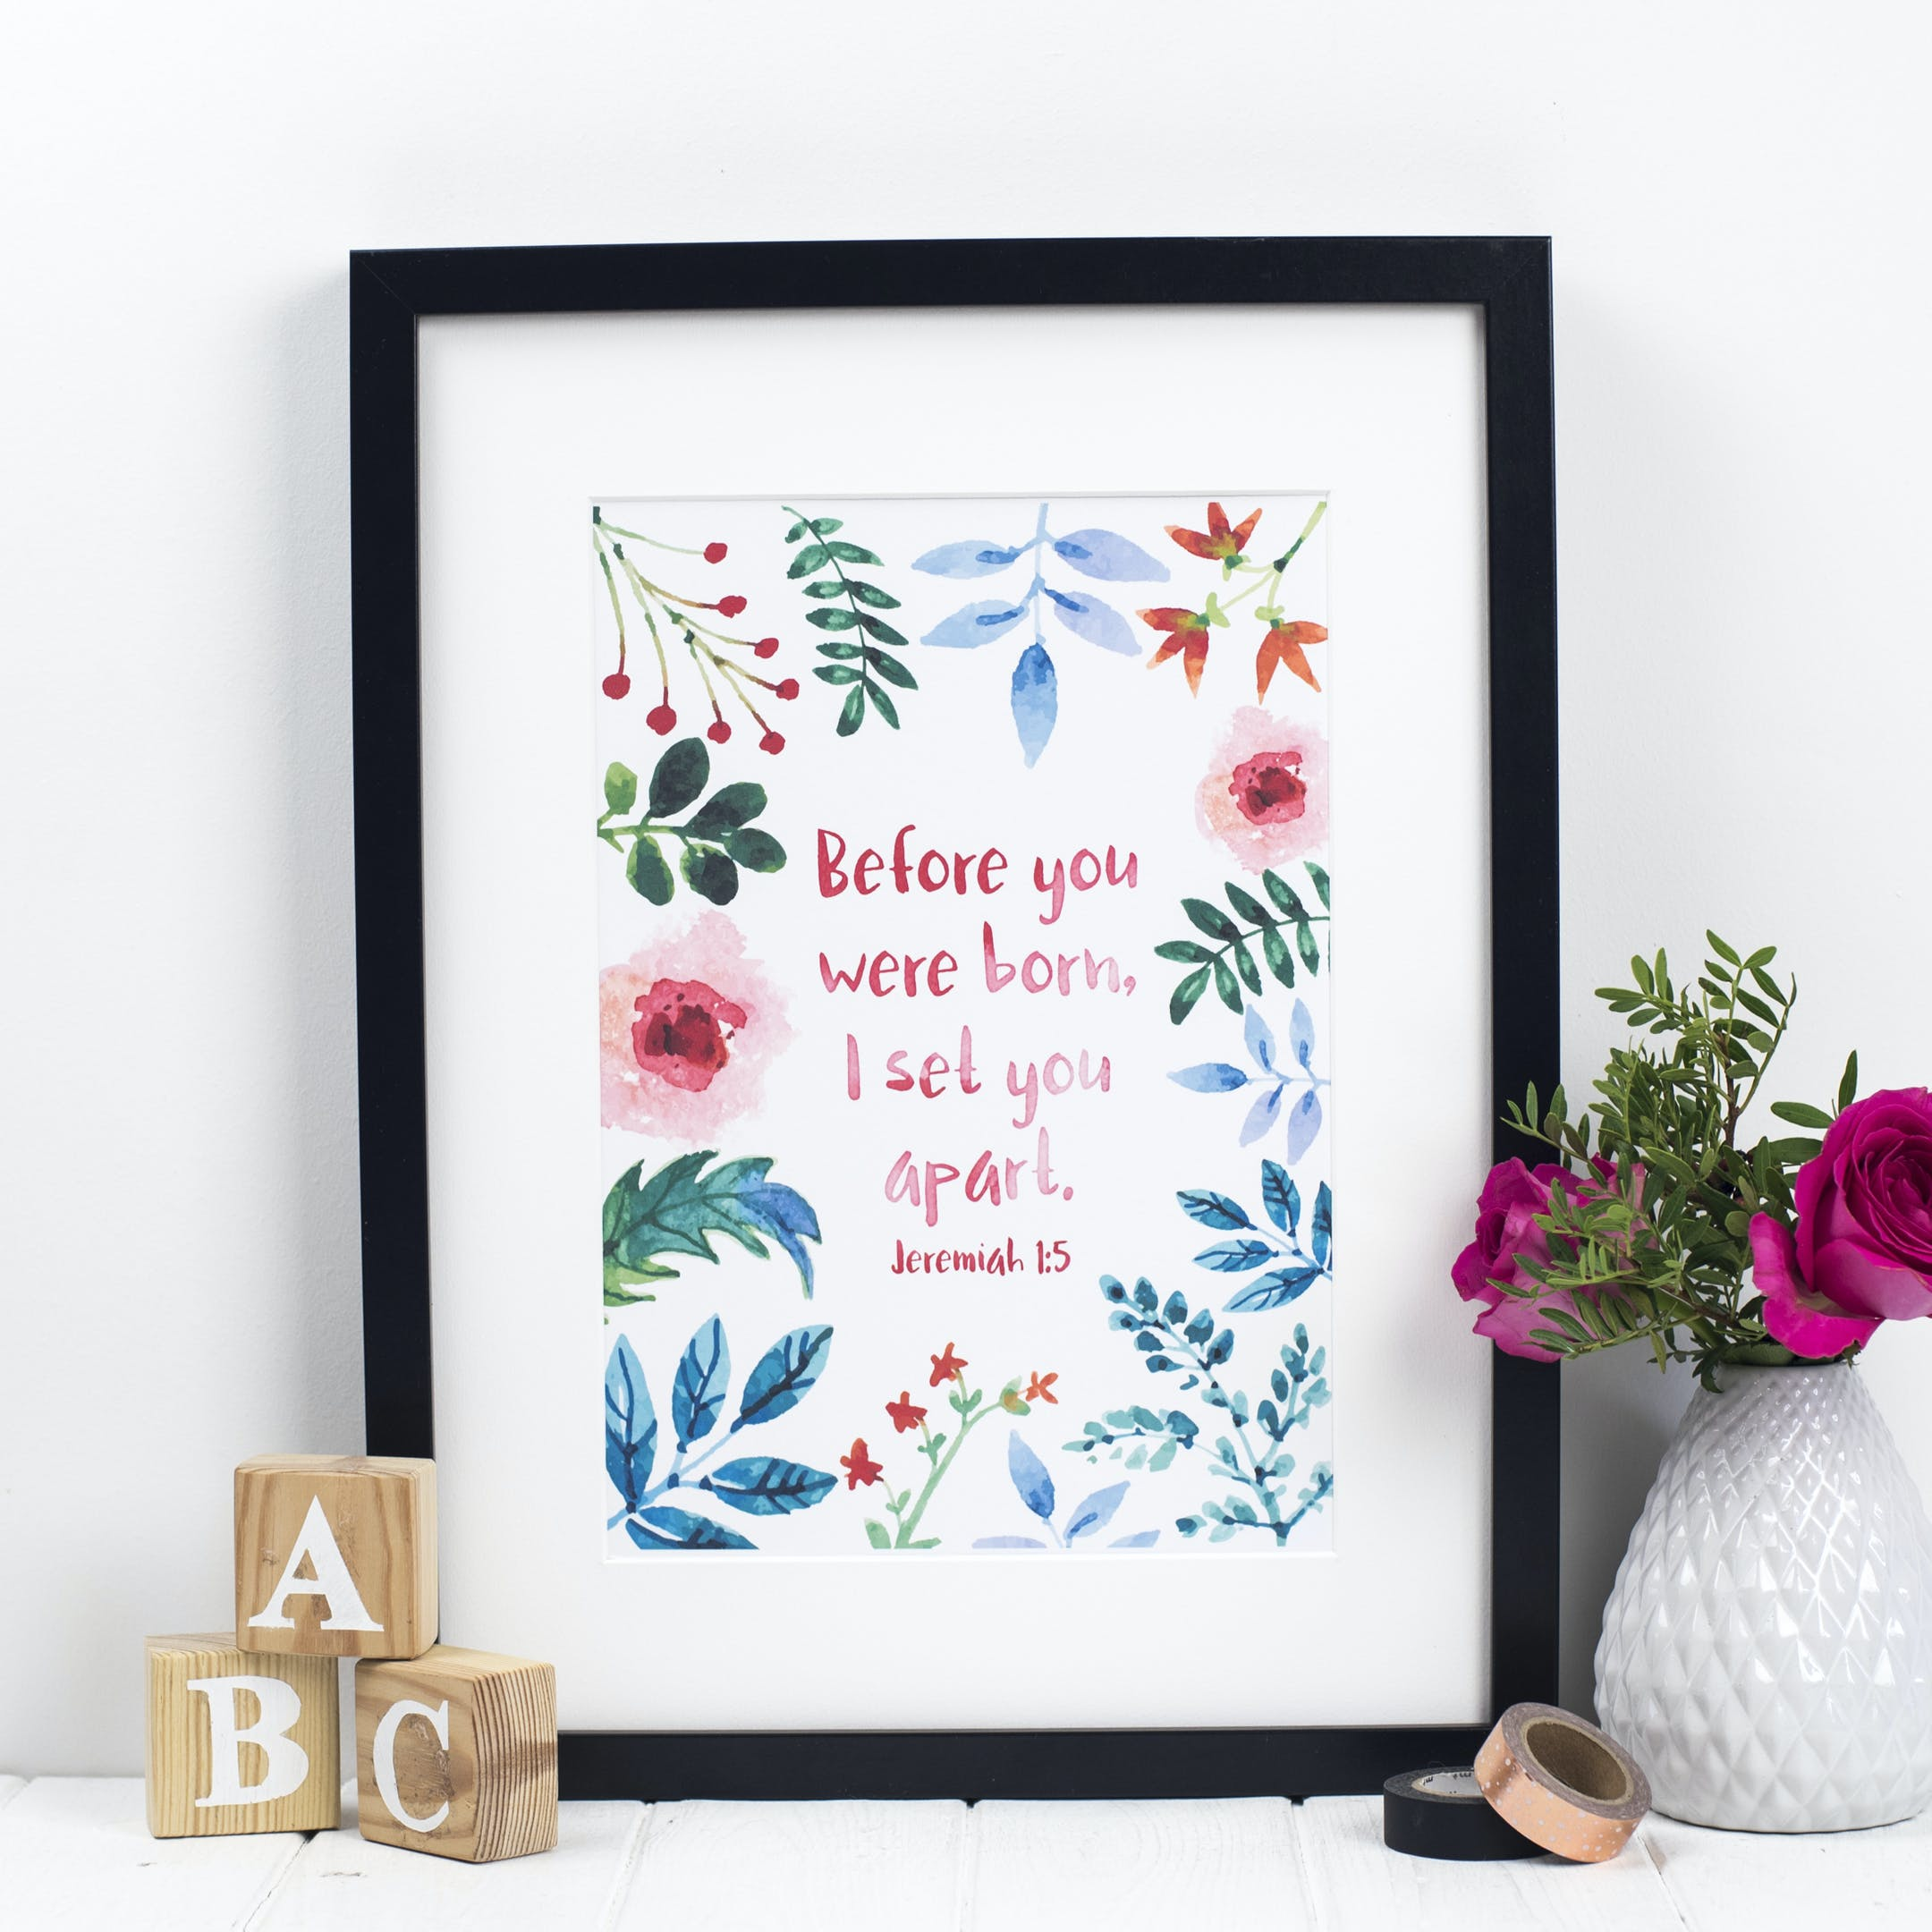 Before You Were Born - Jeremiah 1:5 Print - Izzy and Pop